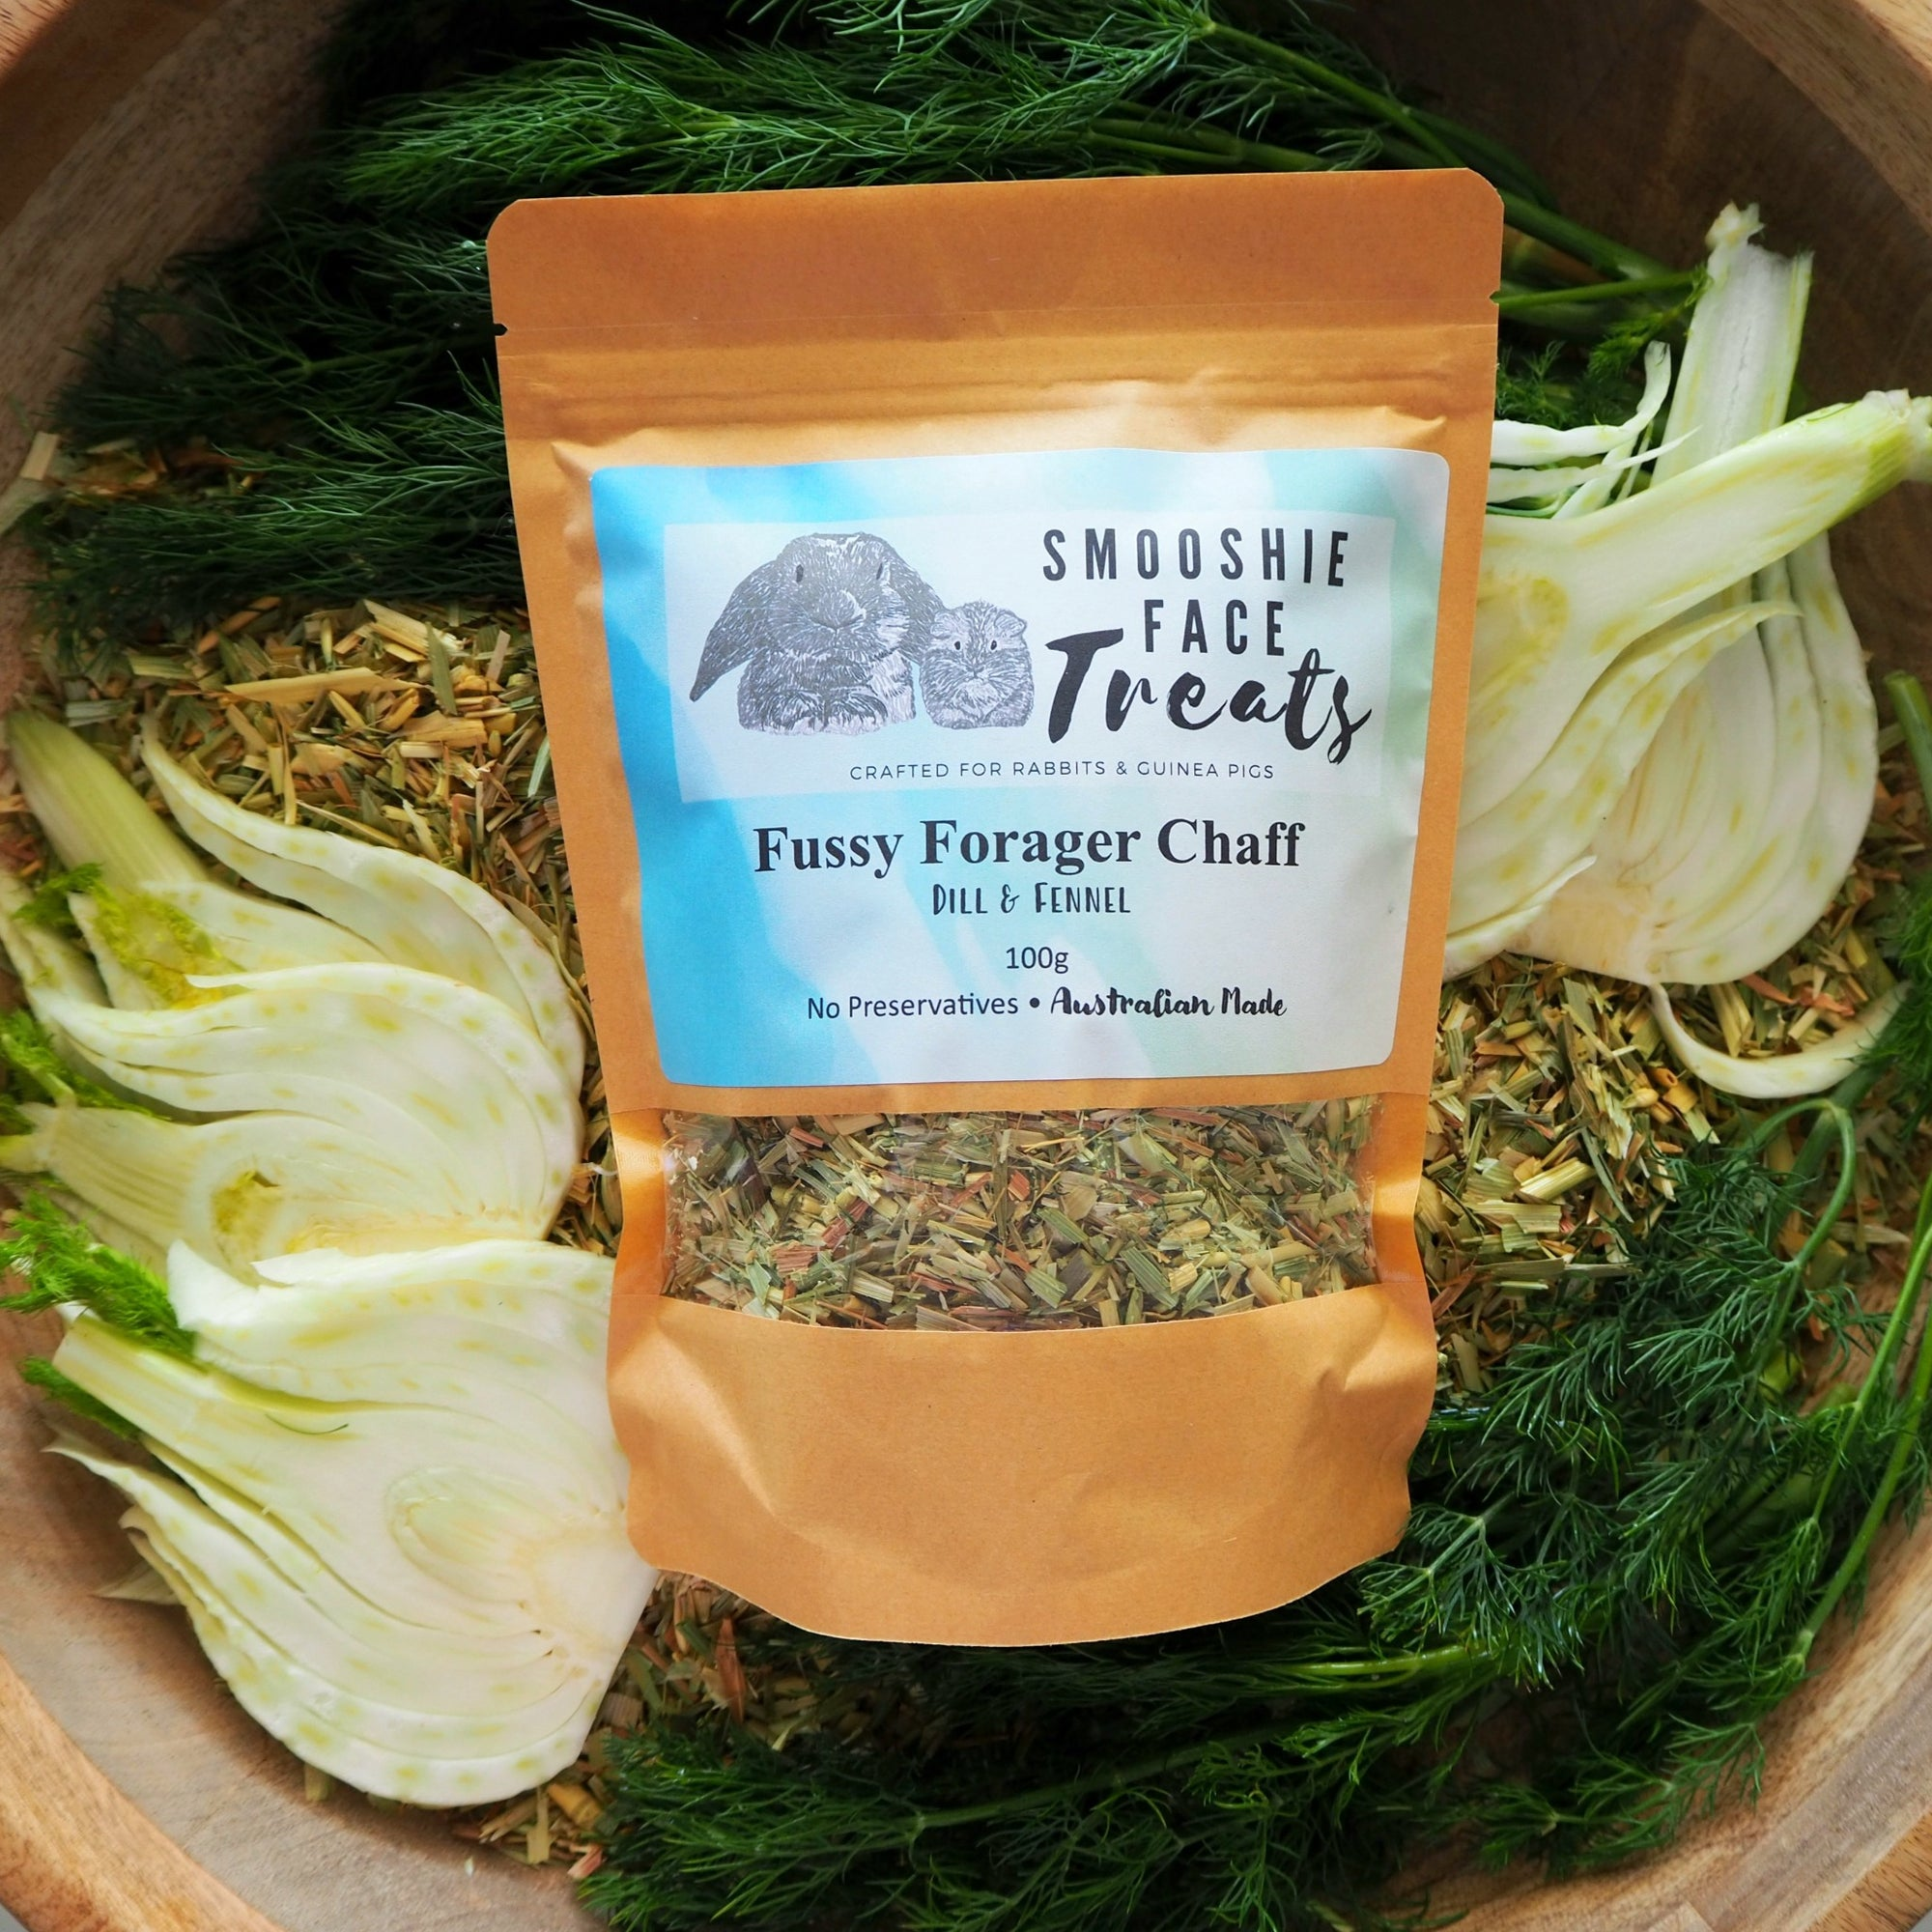 Fussy Forager Chaff 100g